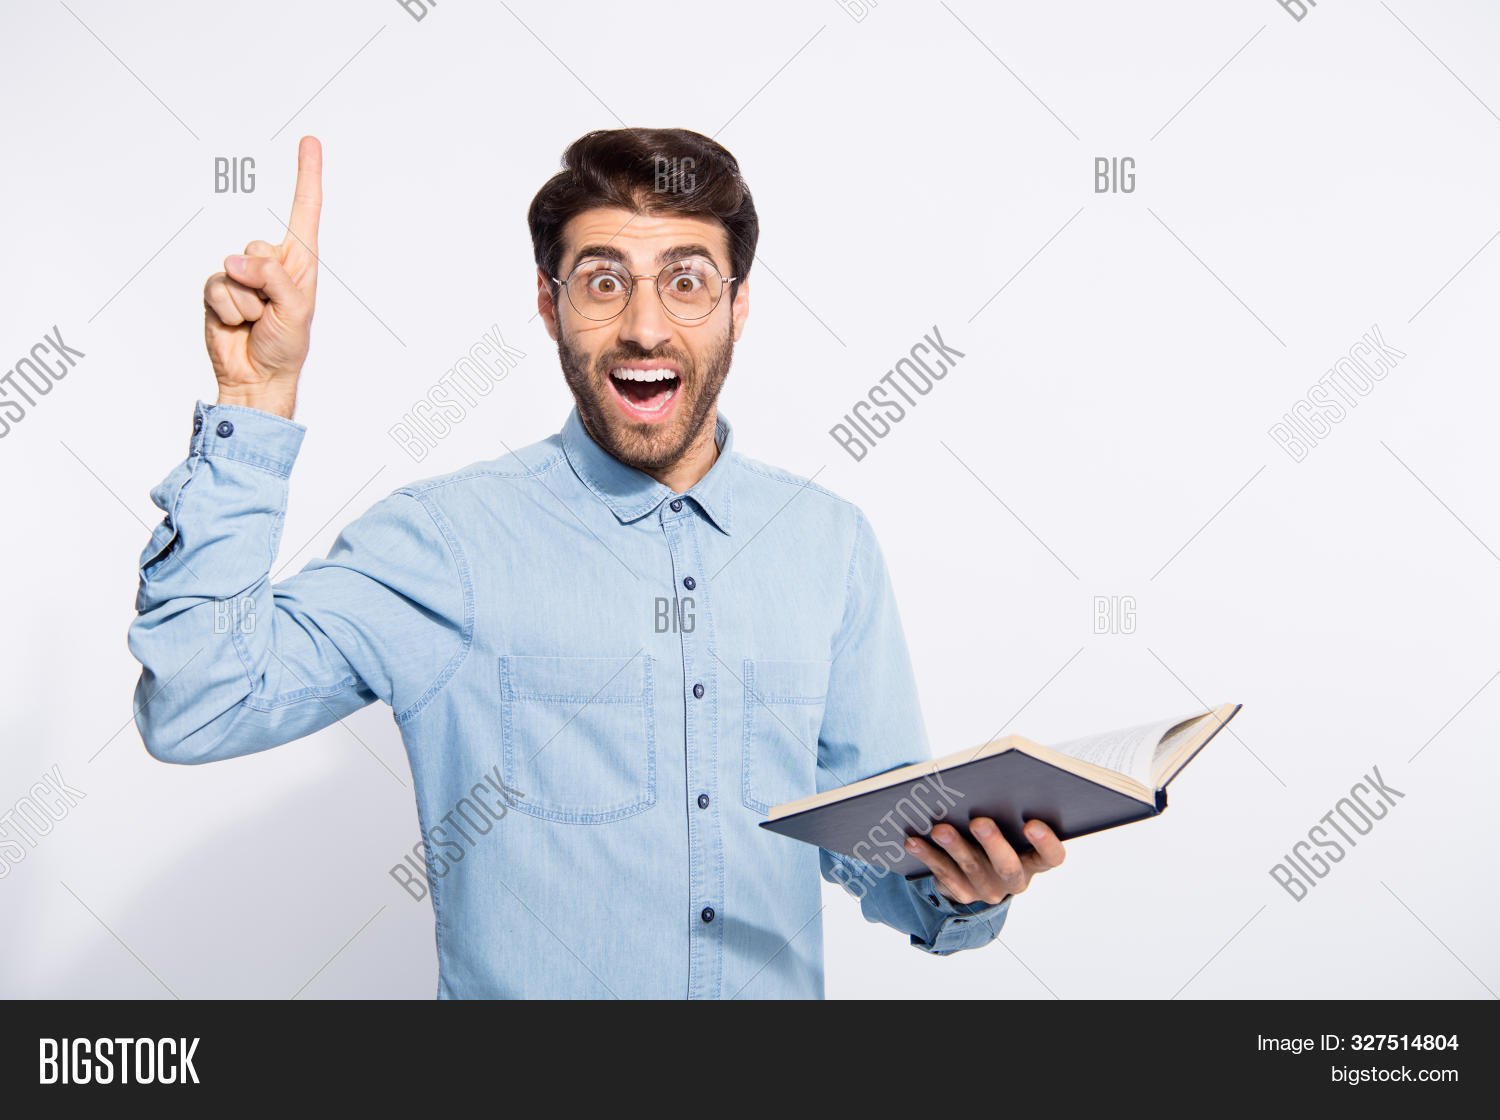 Photo Of Multiethnic Clever Guy Holding Planner Indicating Finger On Black Board Explaining Students